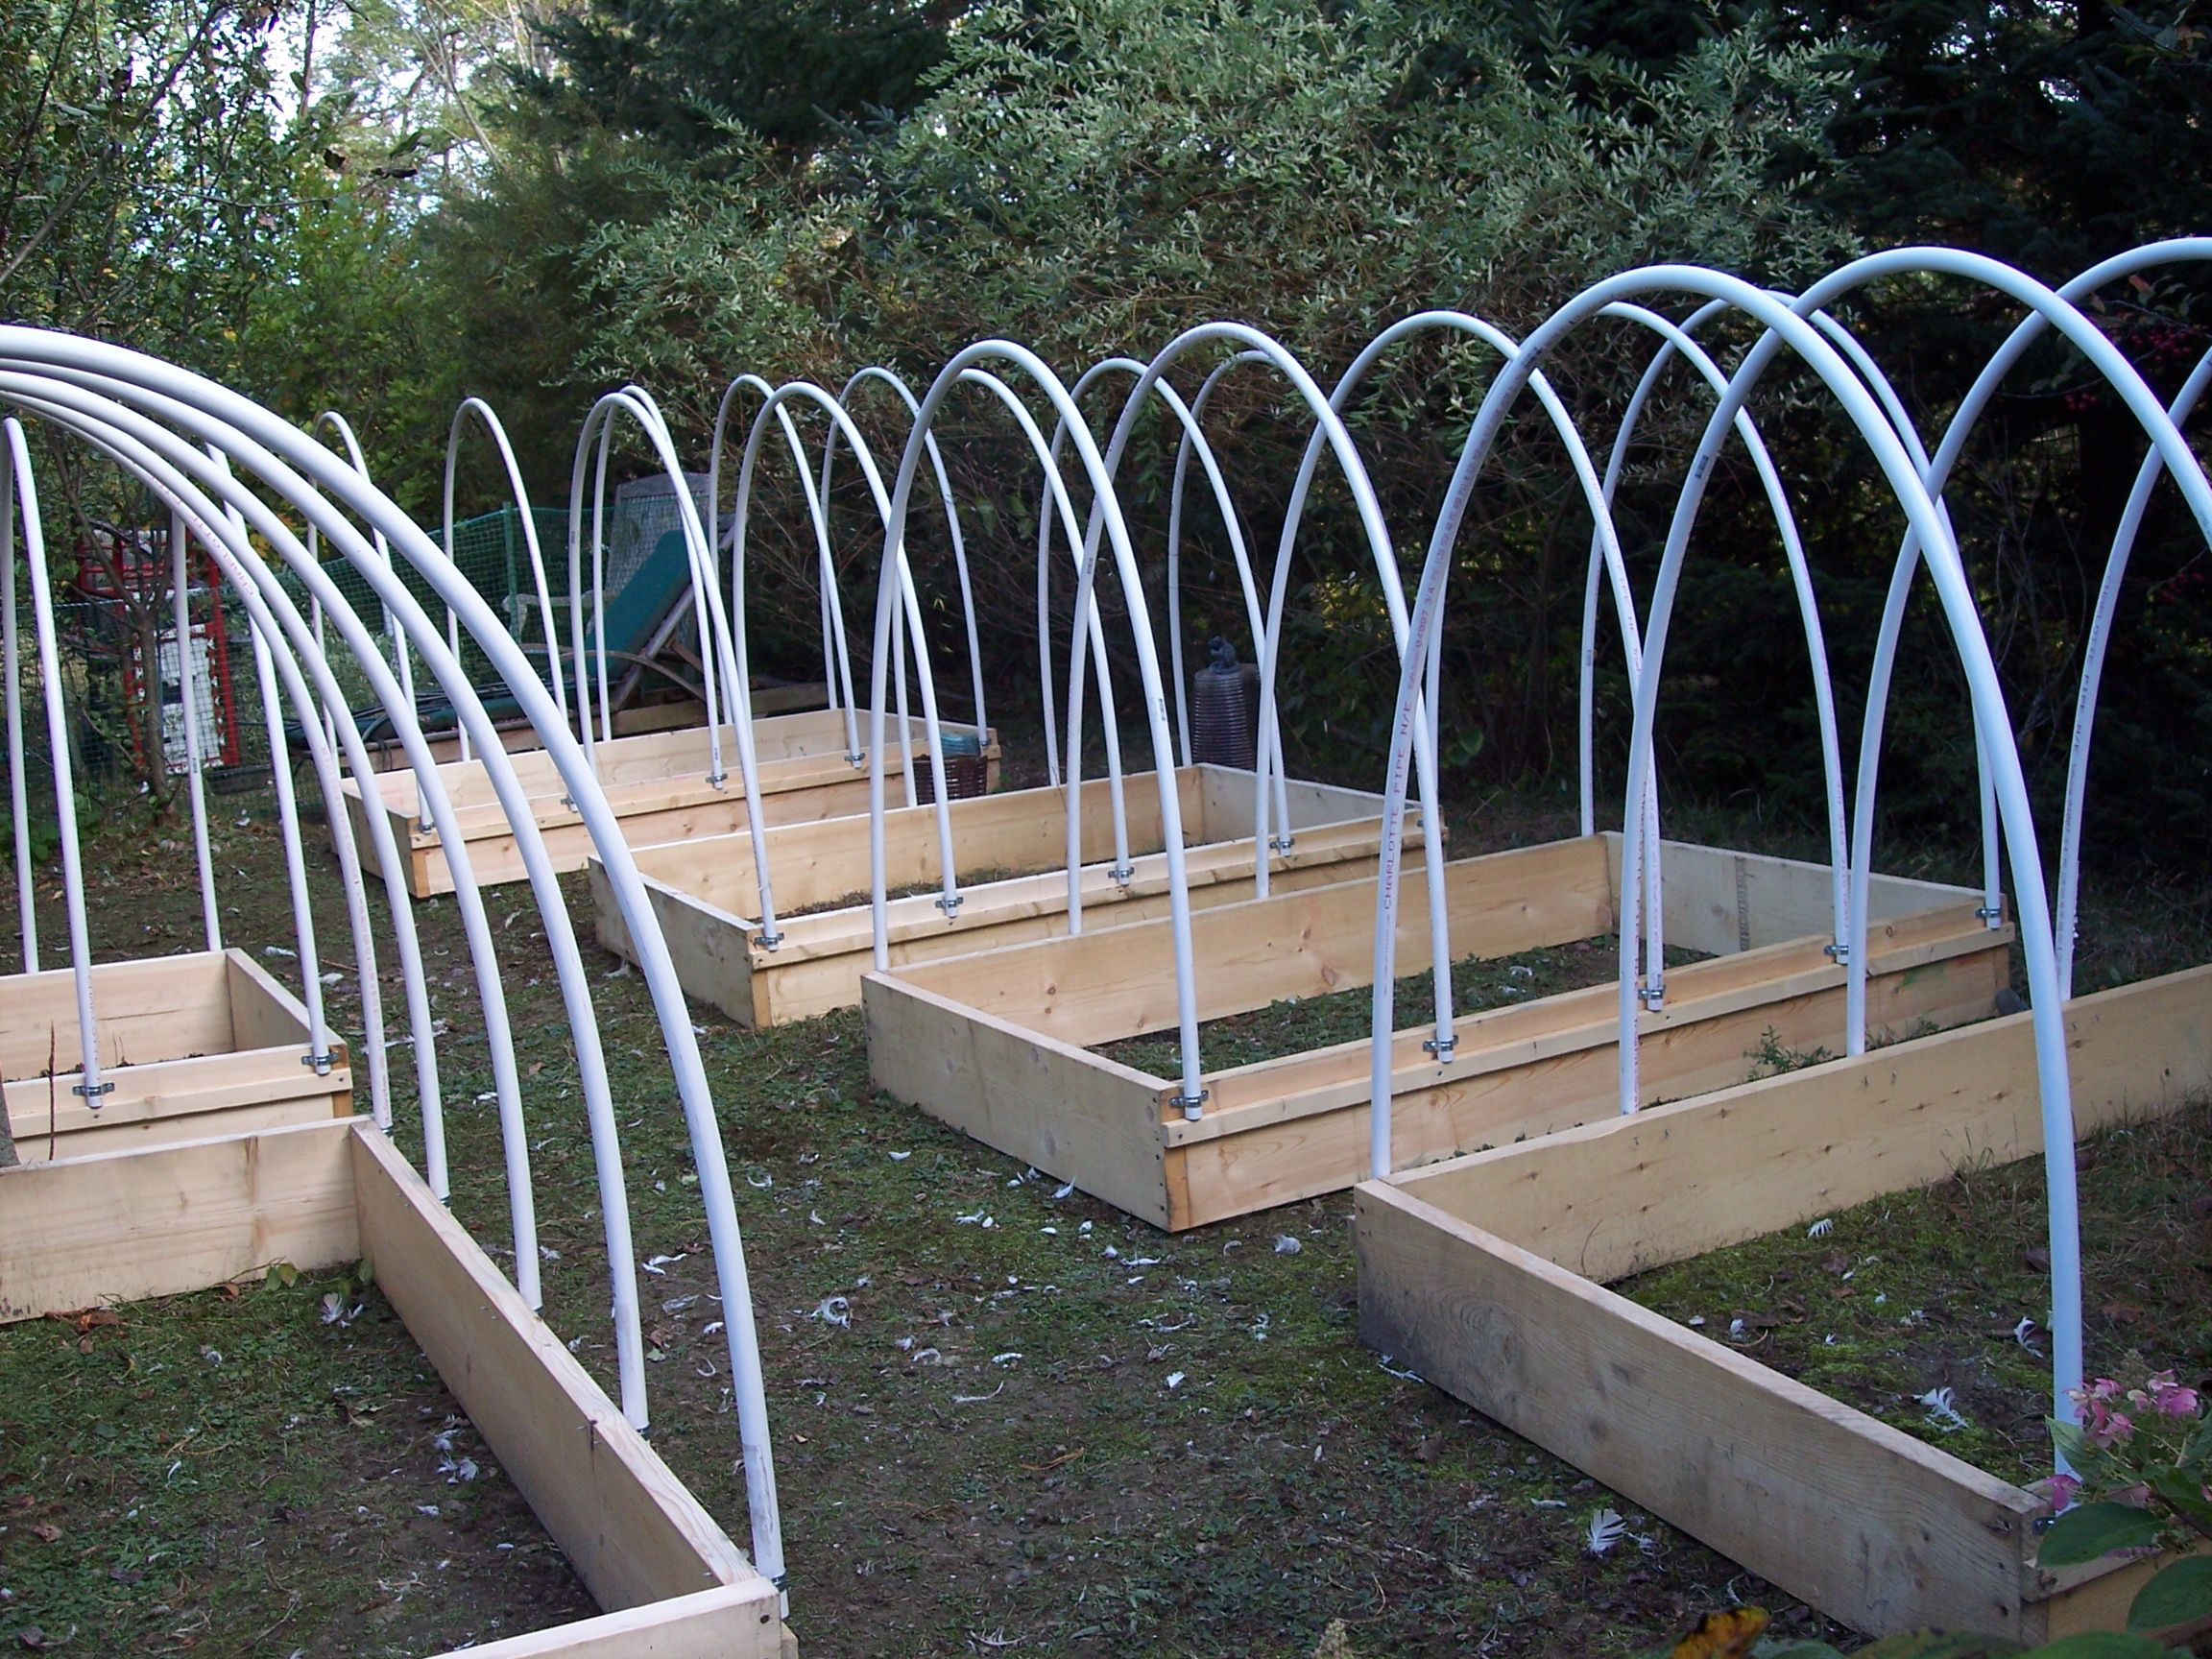 Pvc Pipe Garden Hoops Google Search Coops Quail Coop Electrical Conduit View Electric Wiring Pigeon